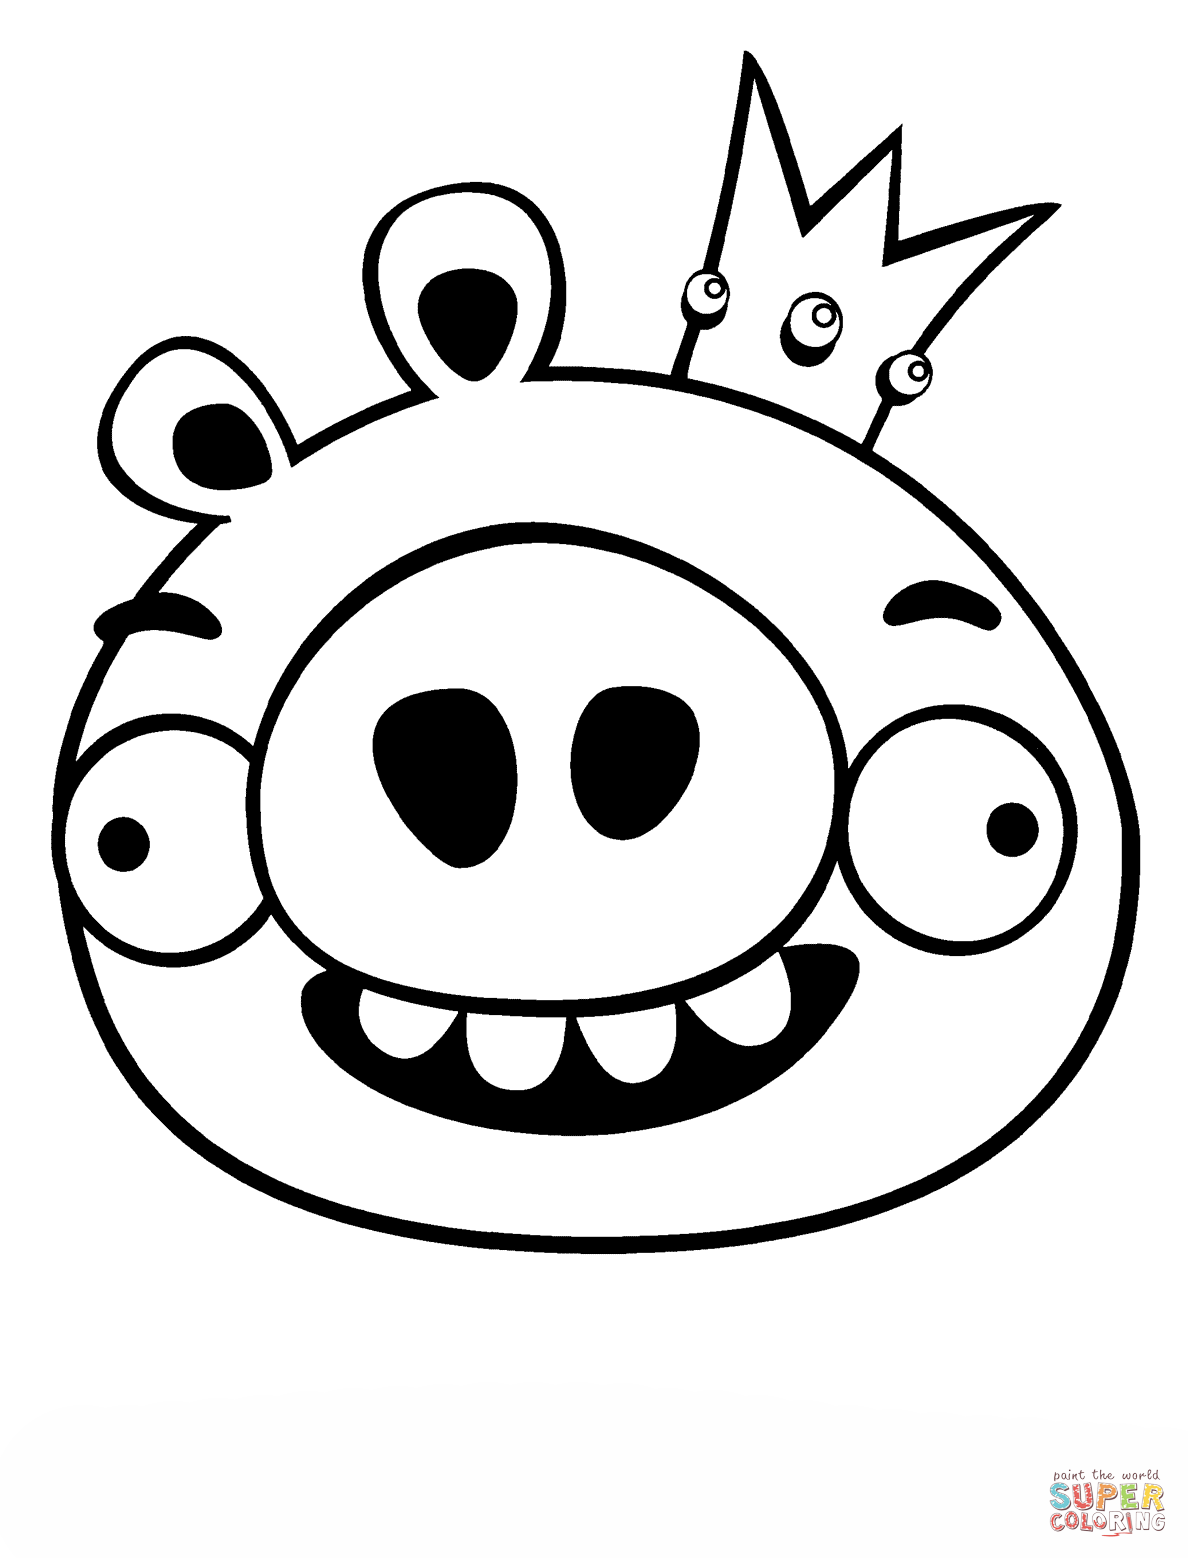 King Pig Coloring Page Free Printable Coloring Pages